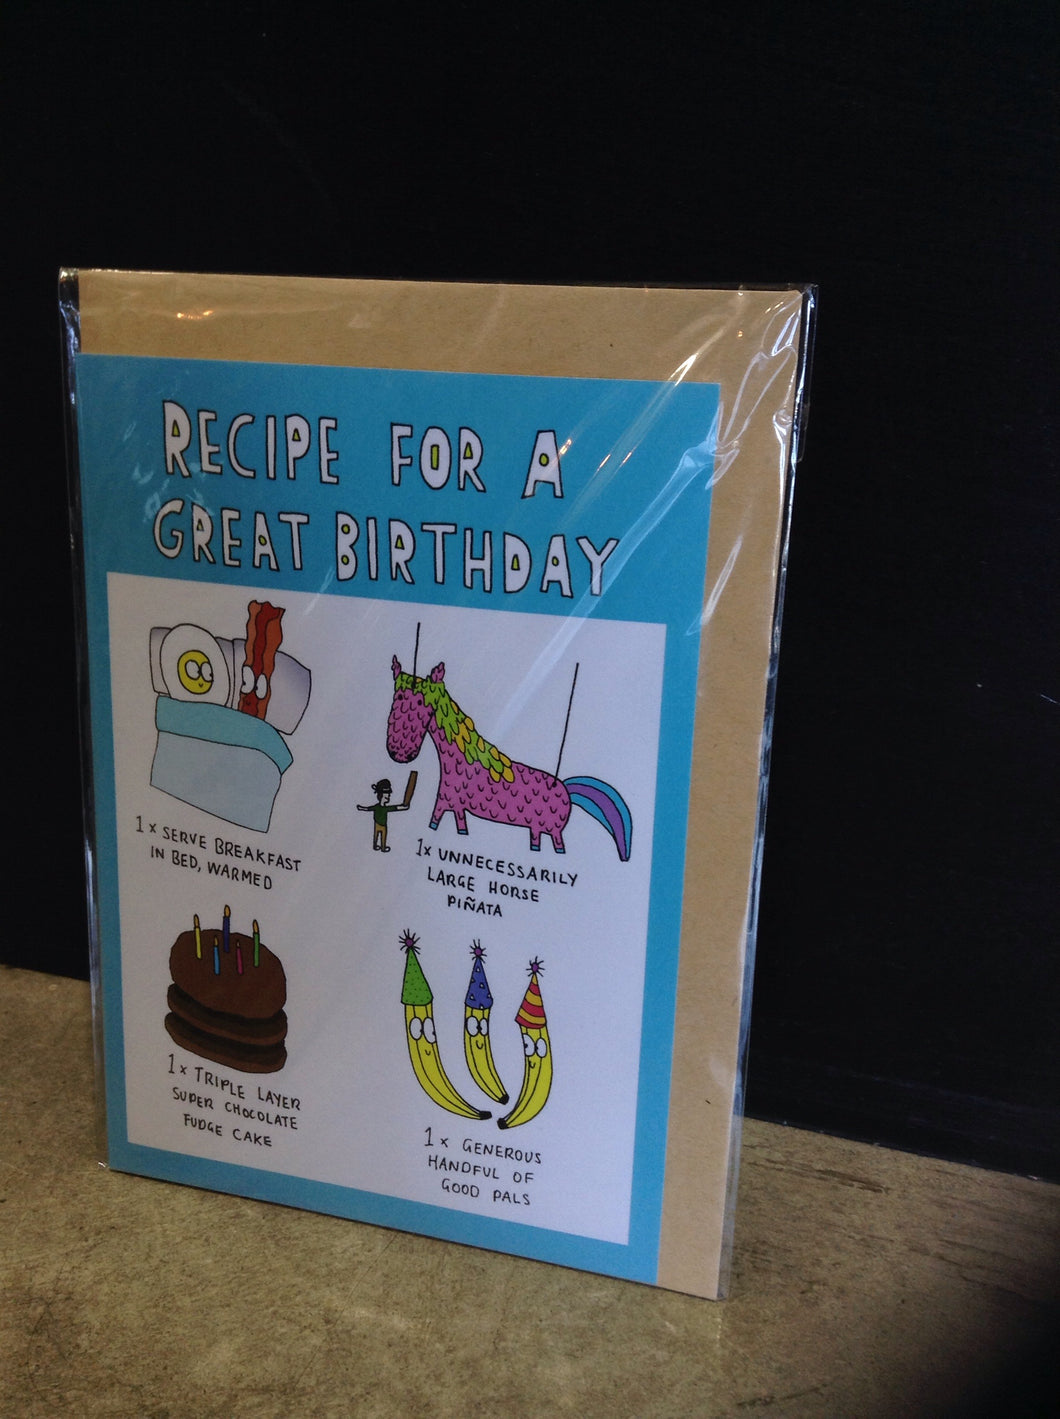 Lemon cards recipe for a great bday